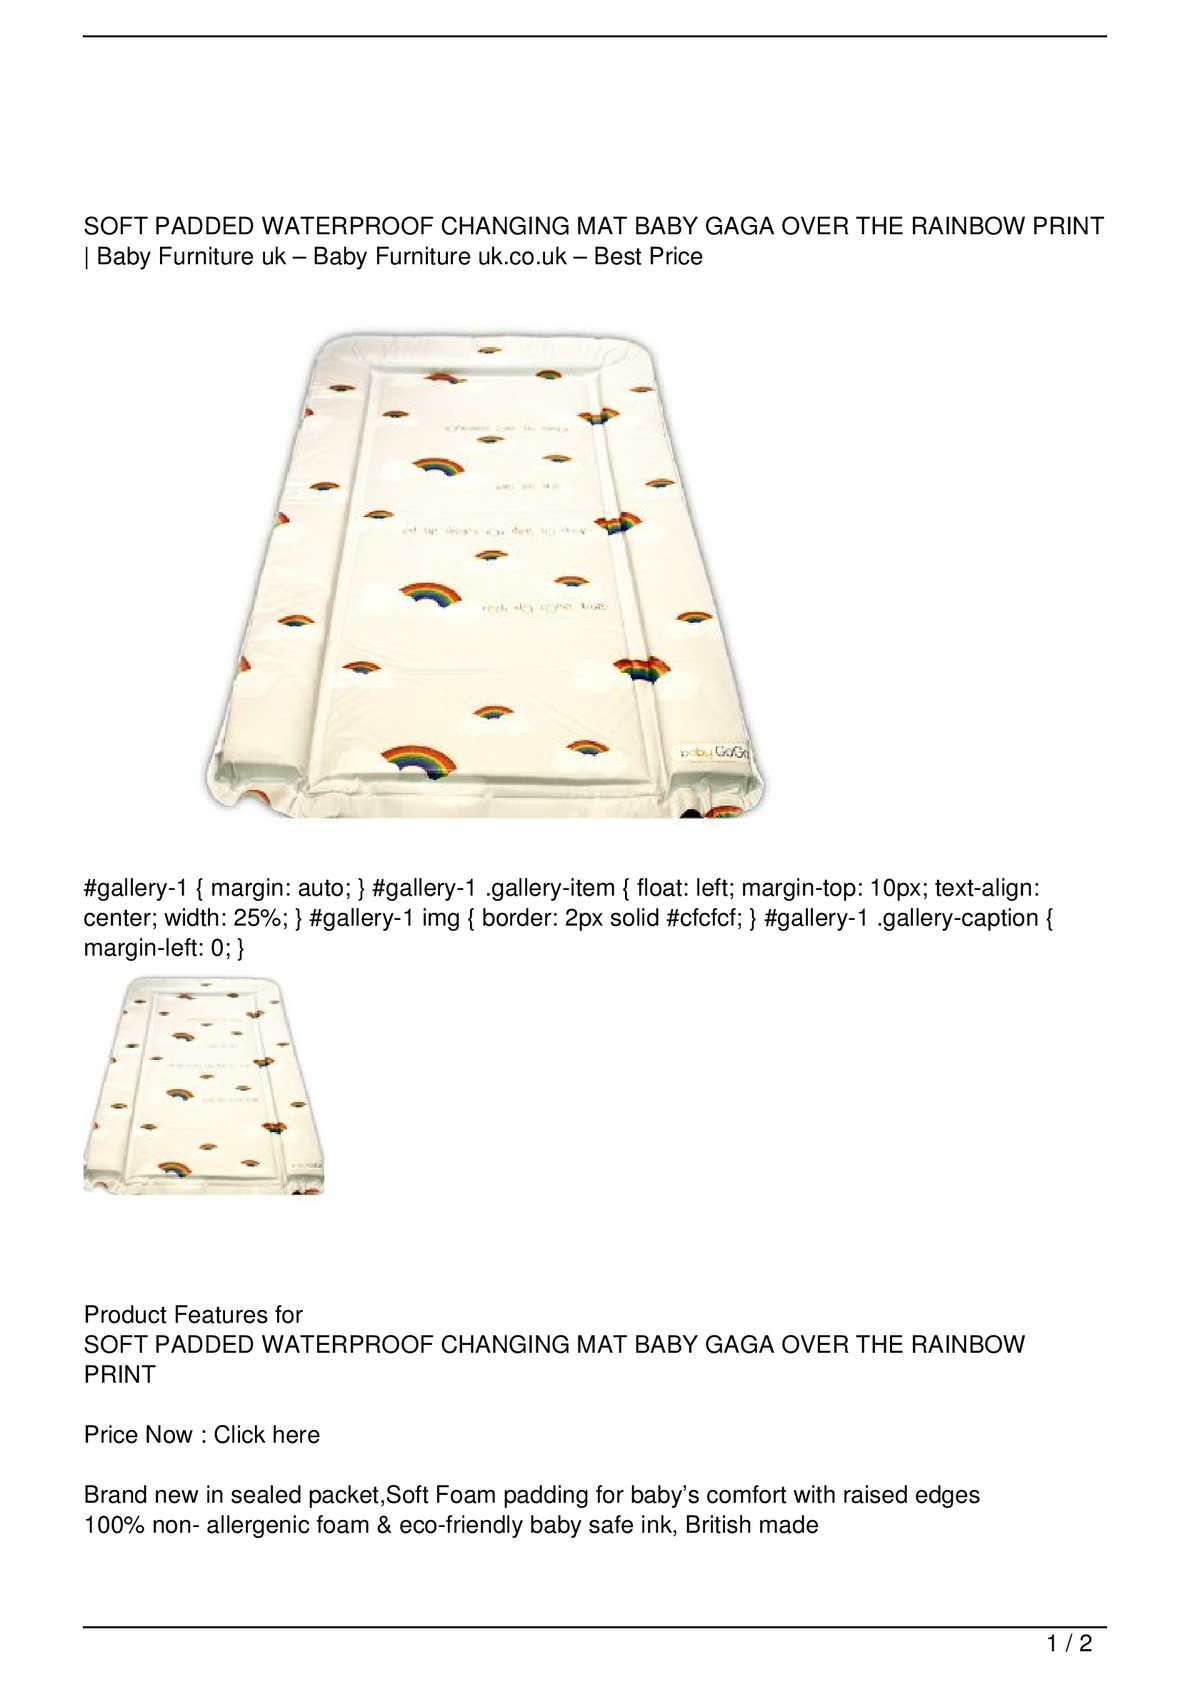 BABY CHANGING MAT SOFT PADDED WATERPROOF BRAND